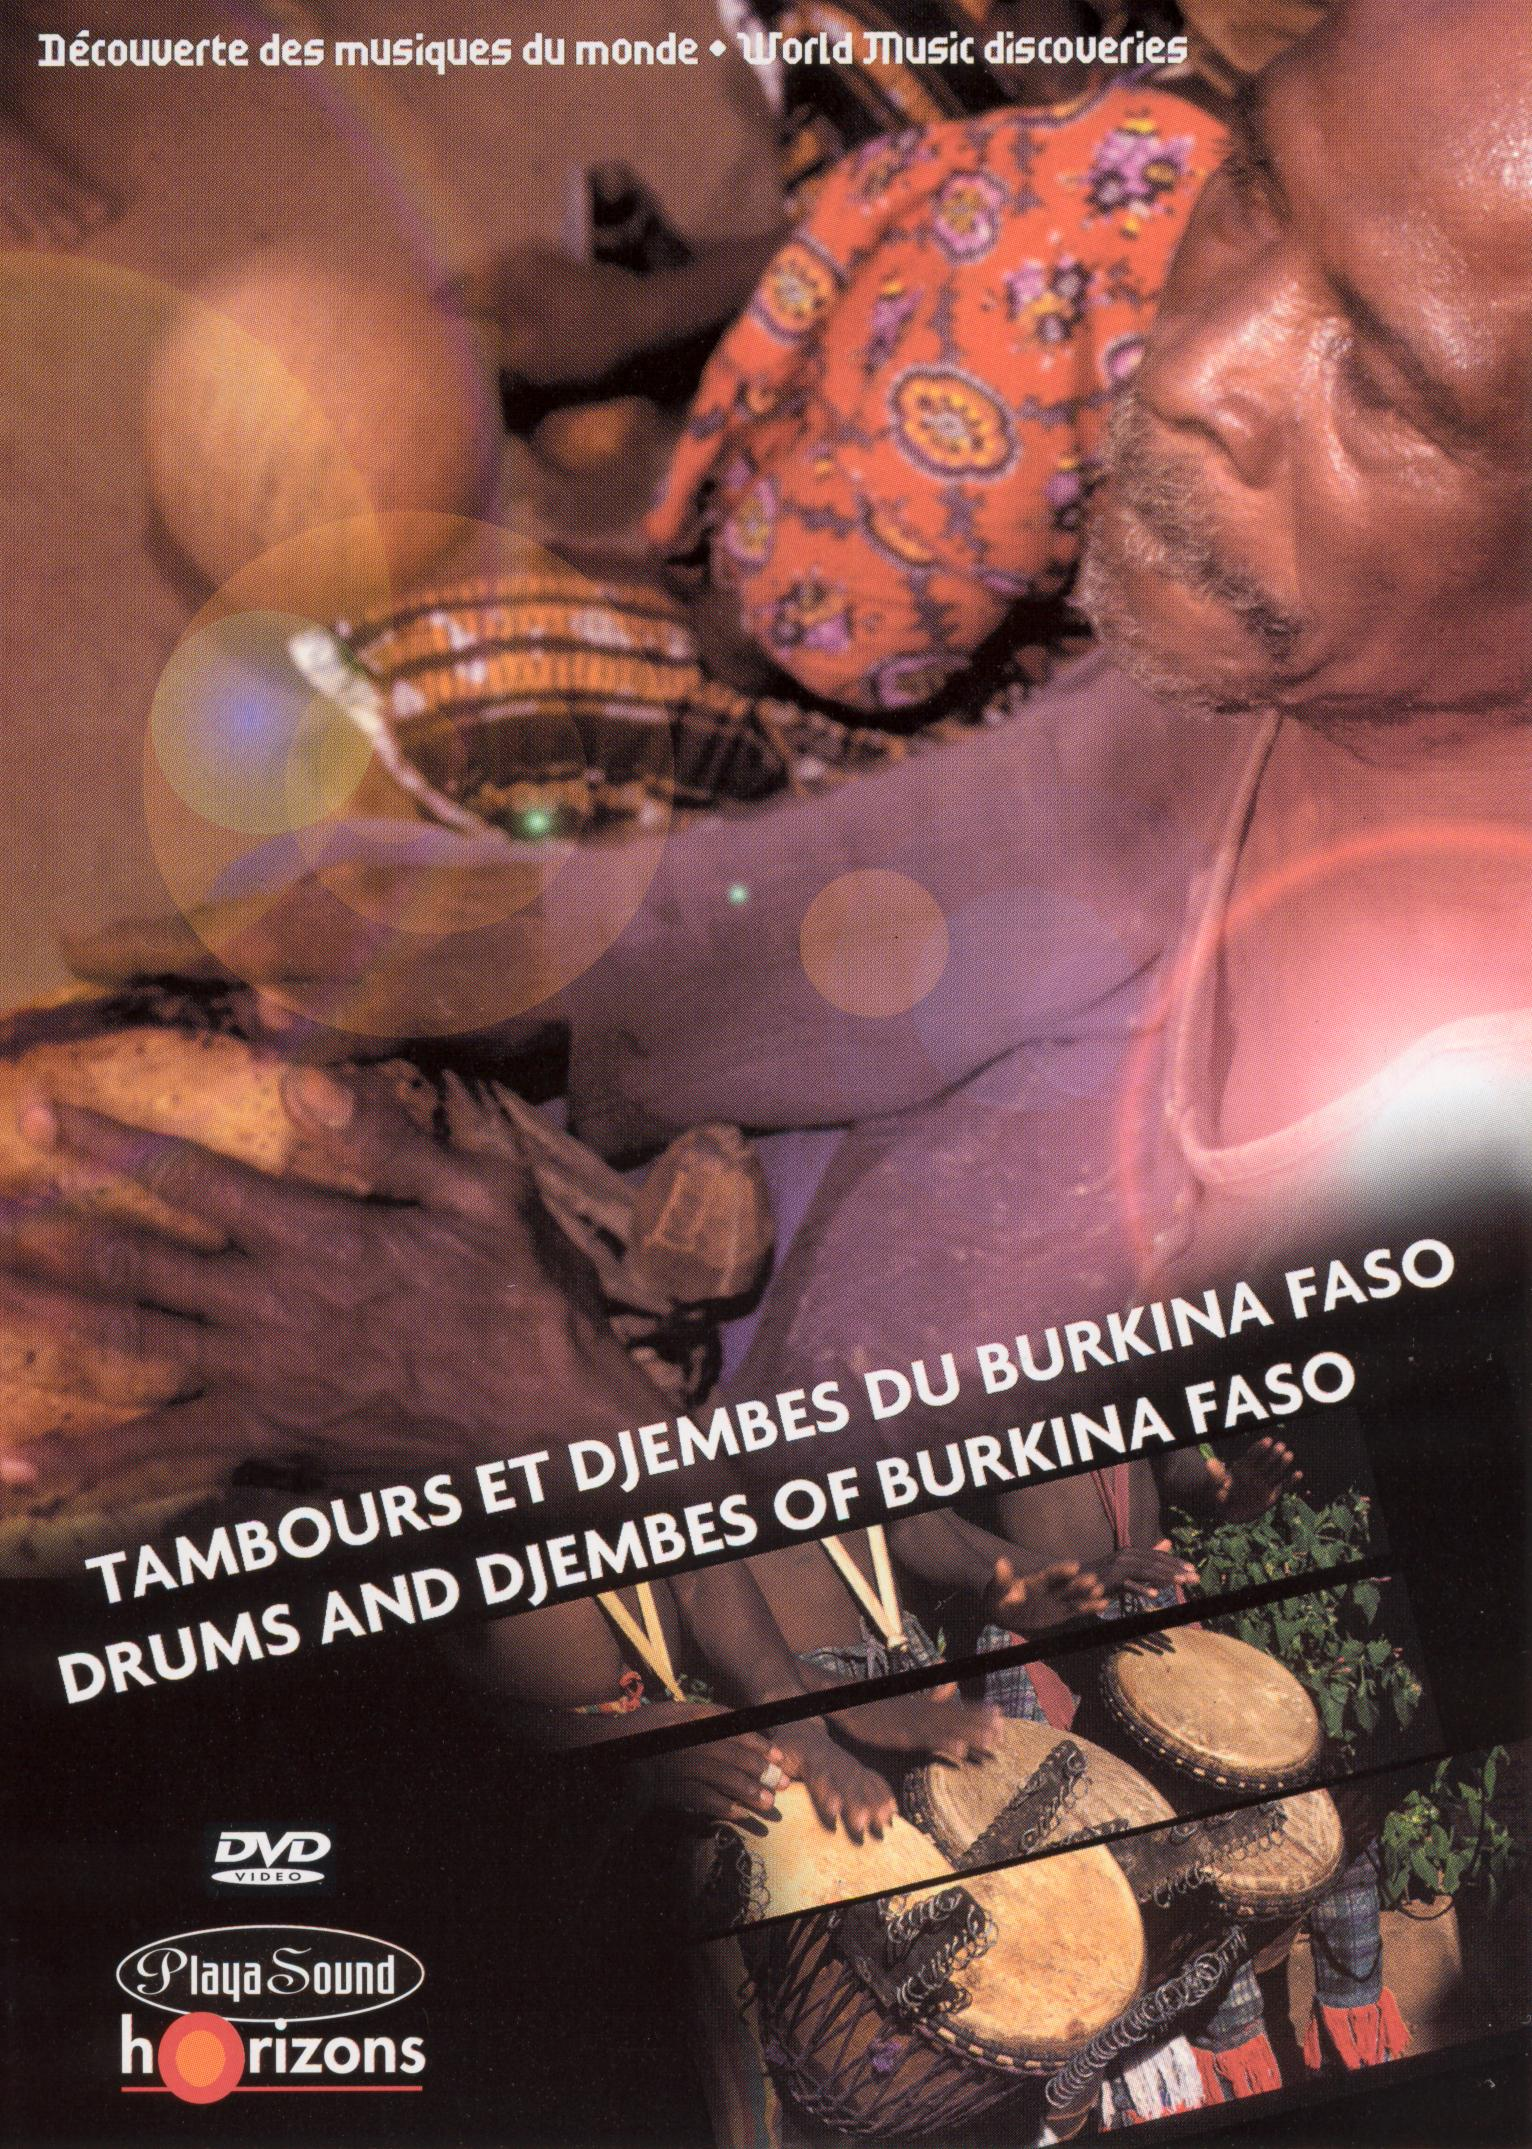 World Music Discoveries: Drums and Djembes of Burkino Faso